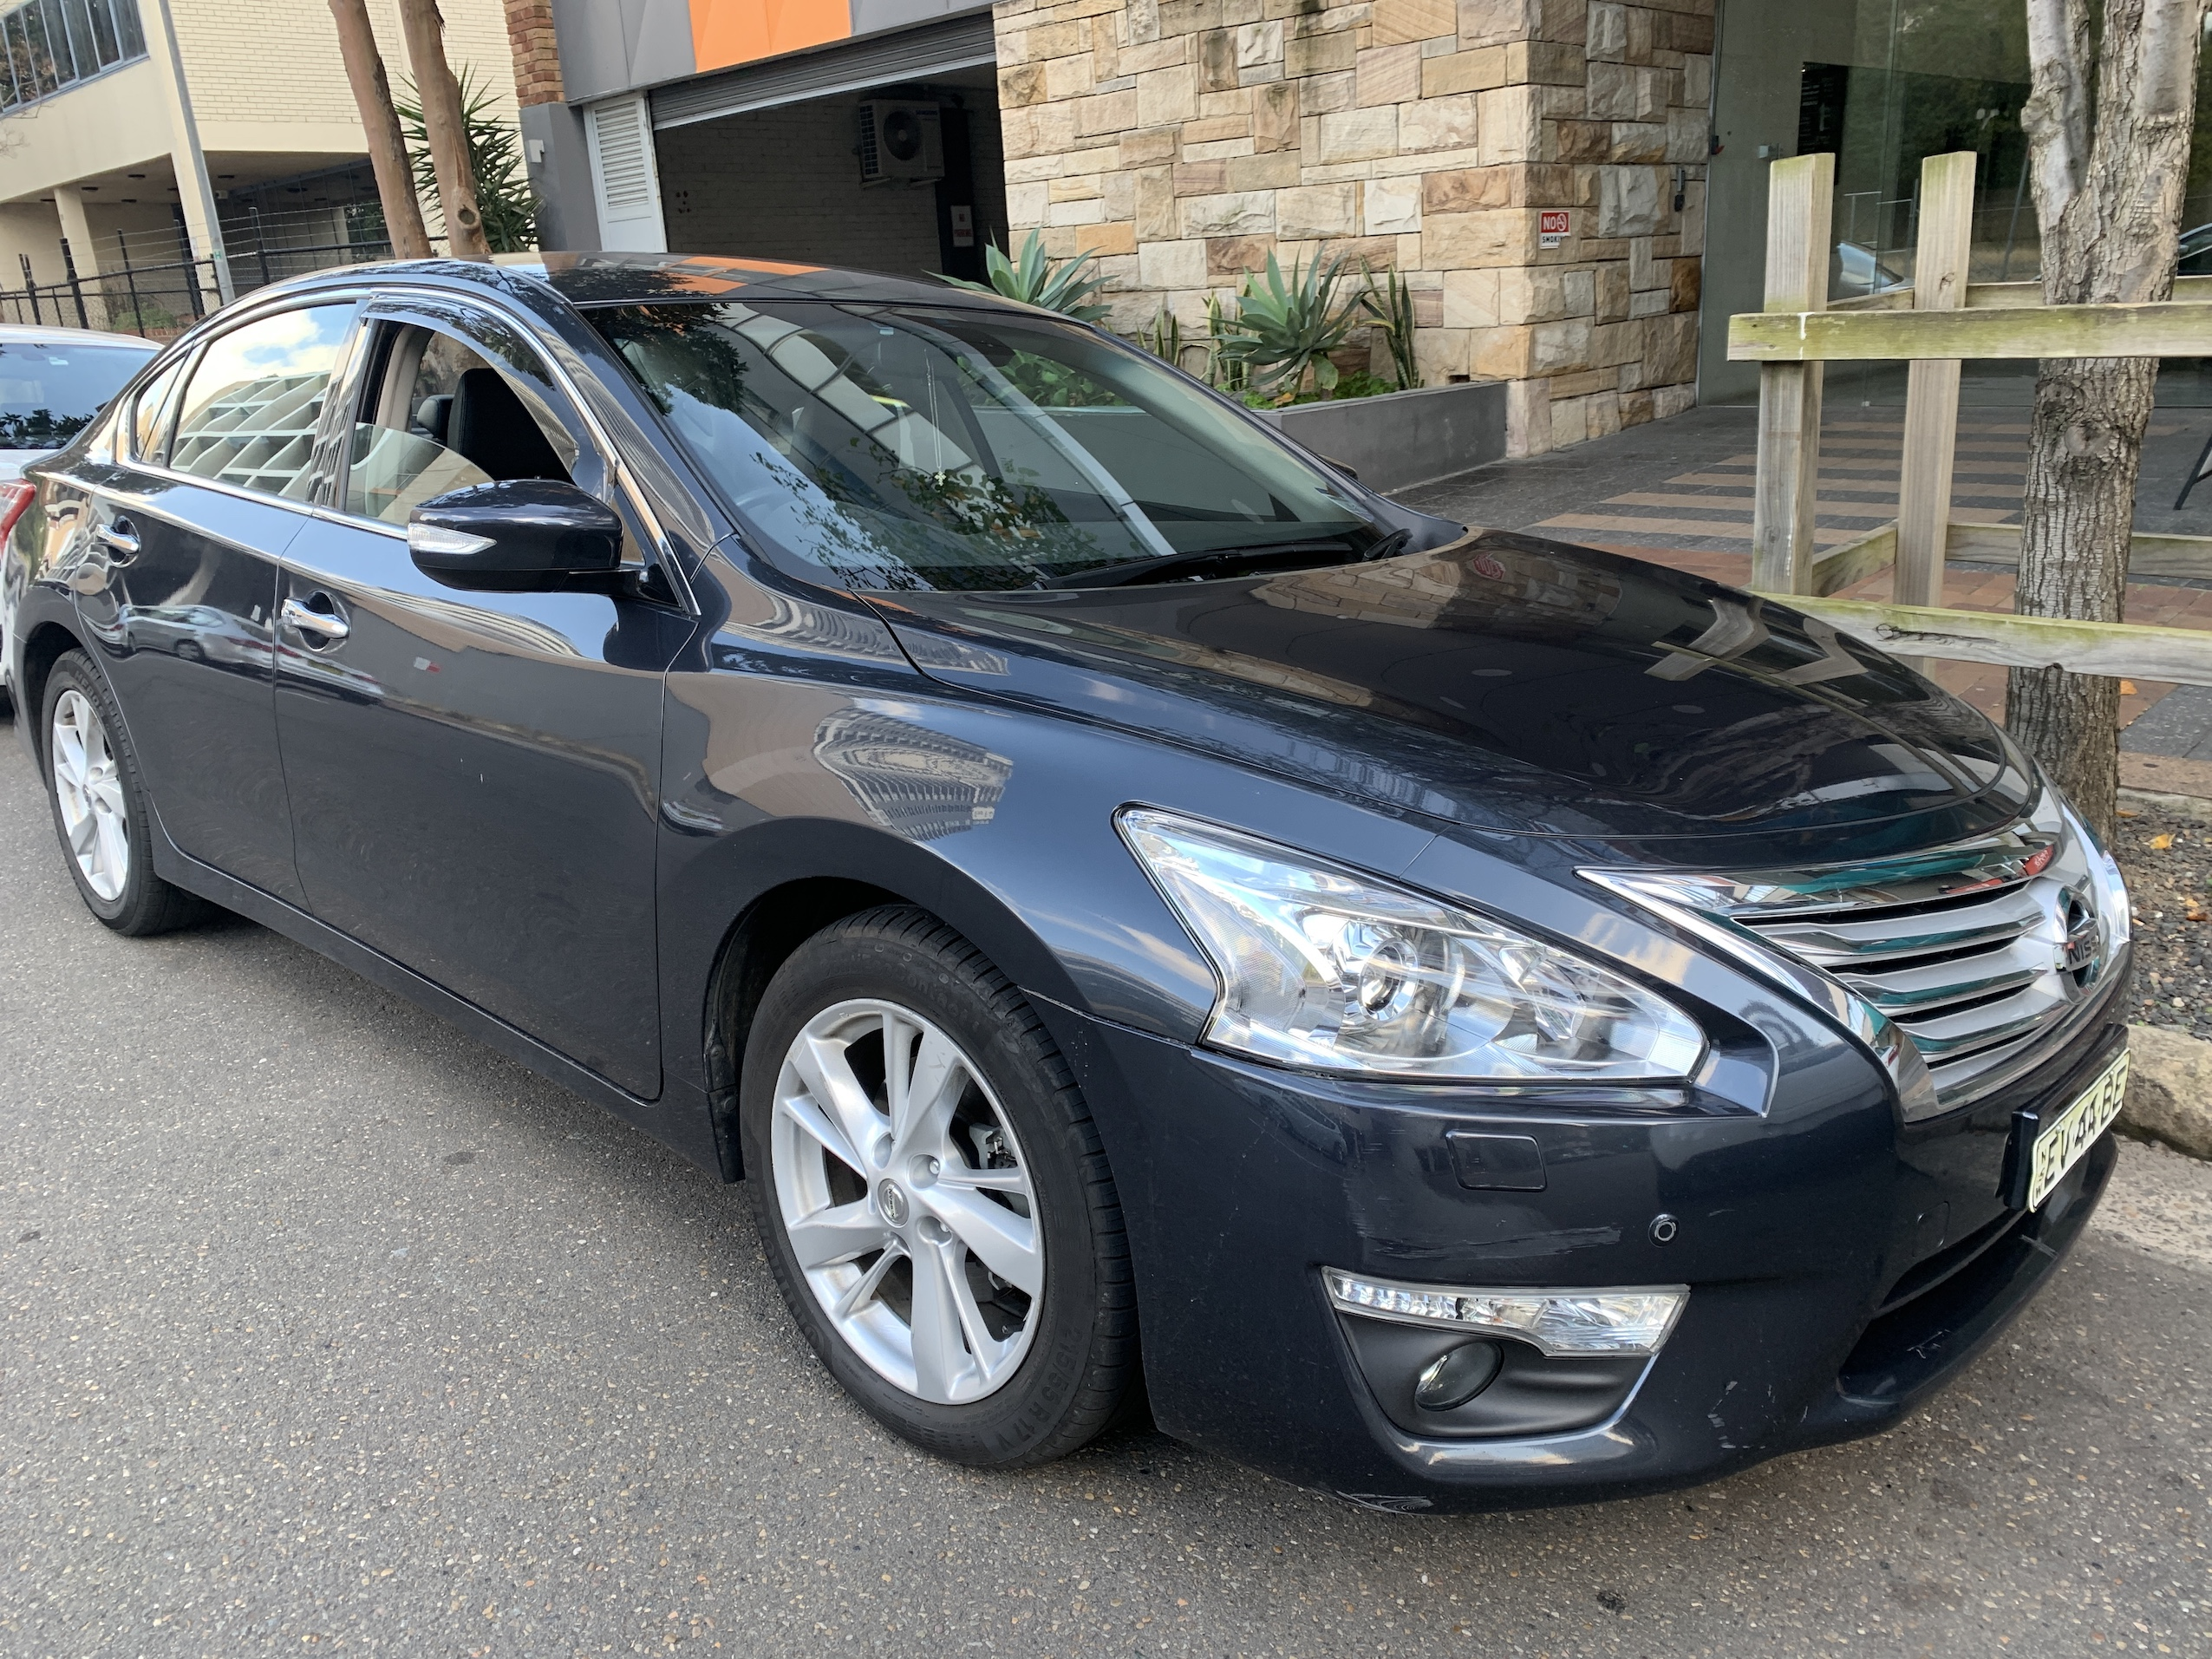 Picture of Yvonne's 2015 Nissan Altima